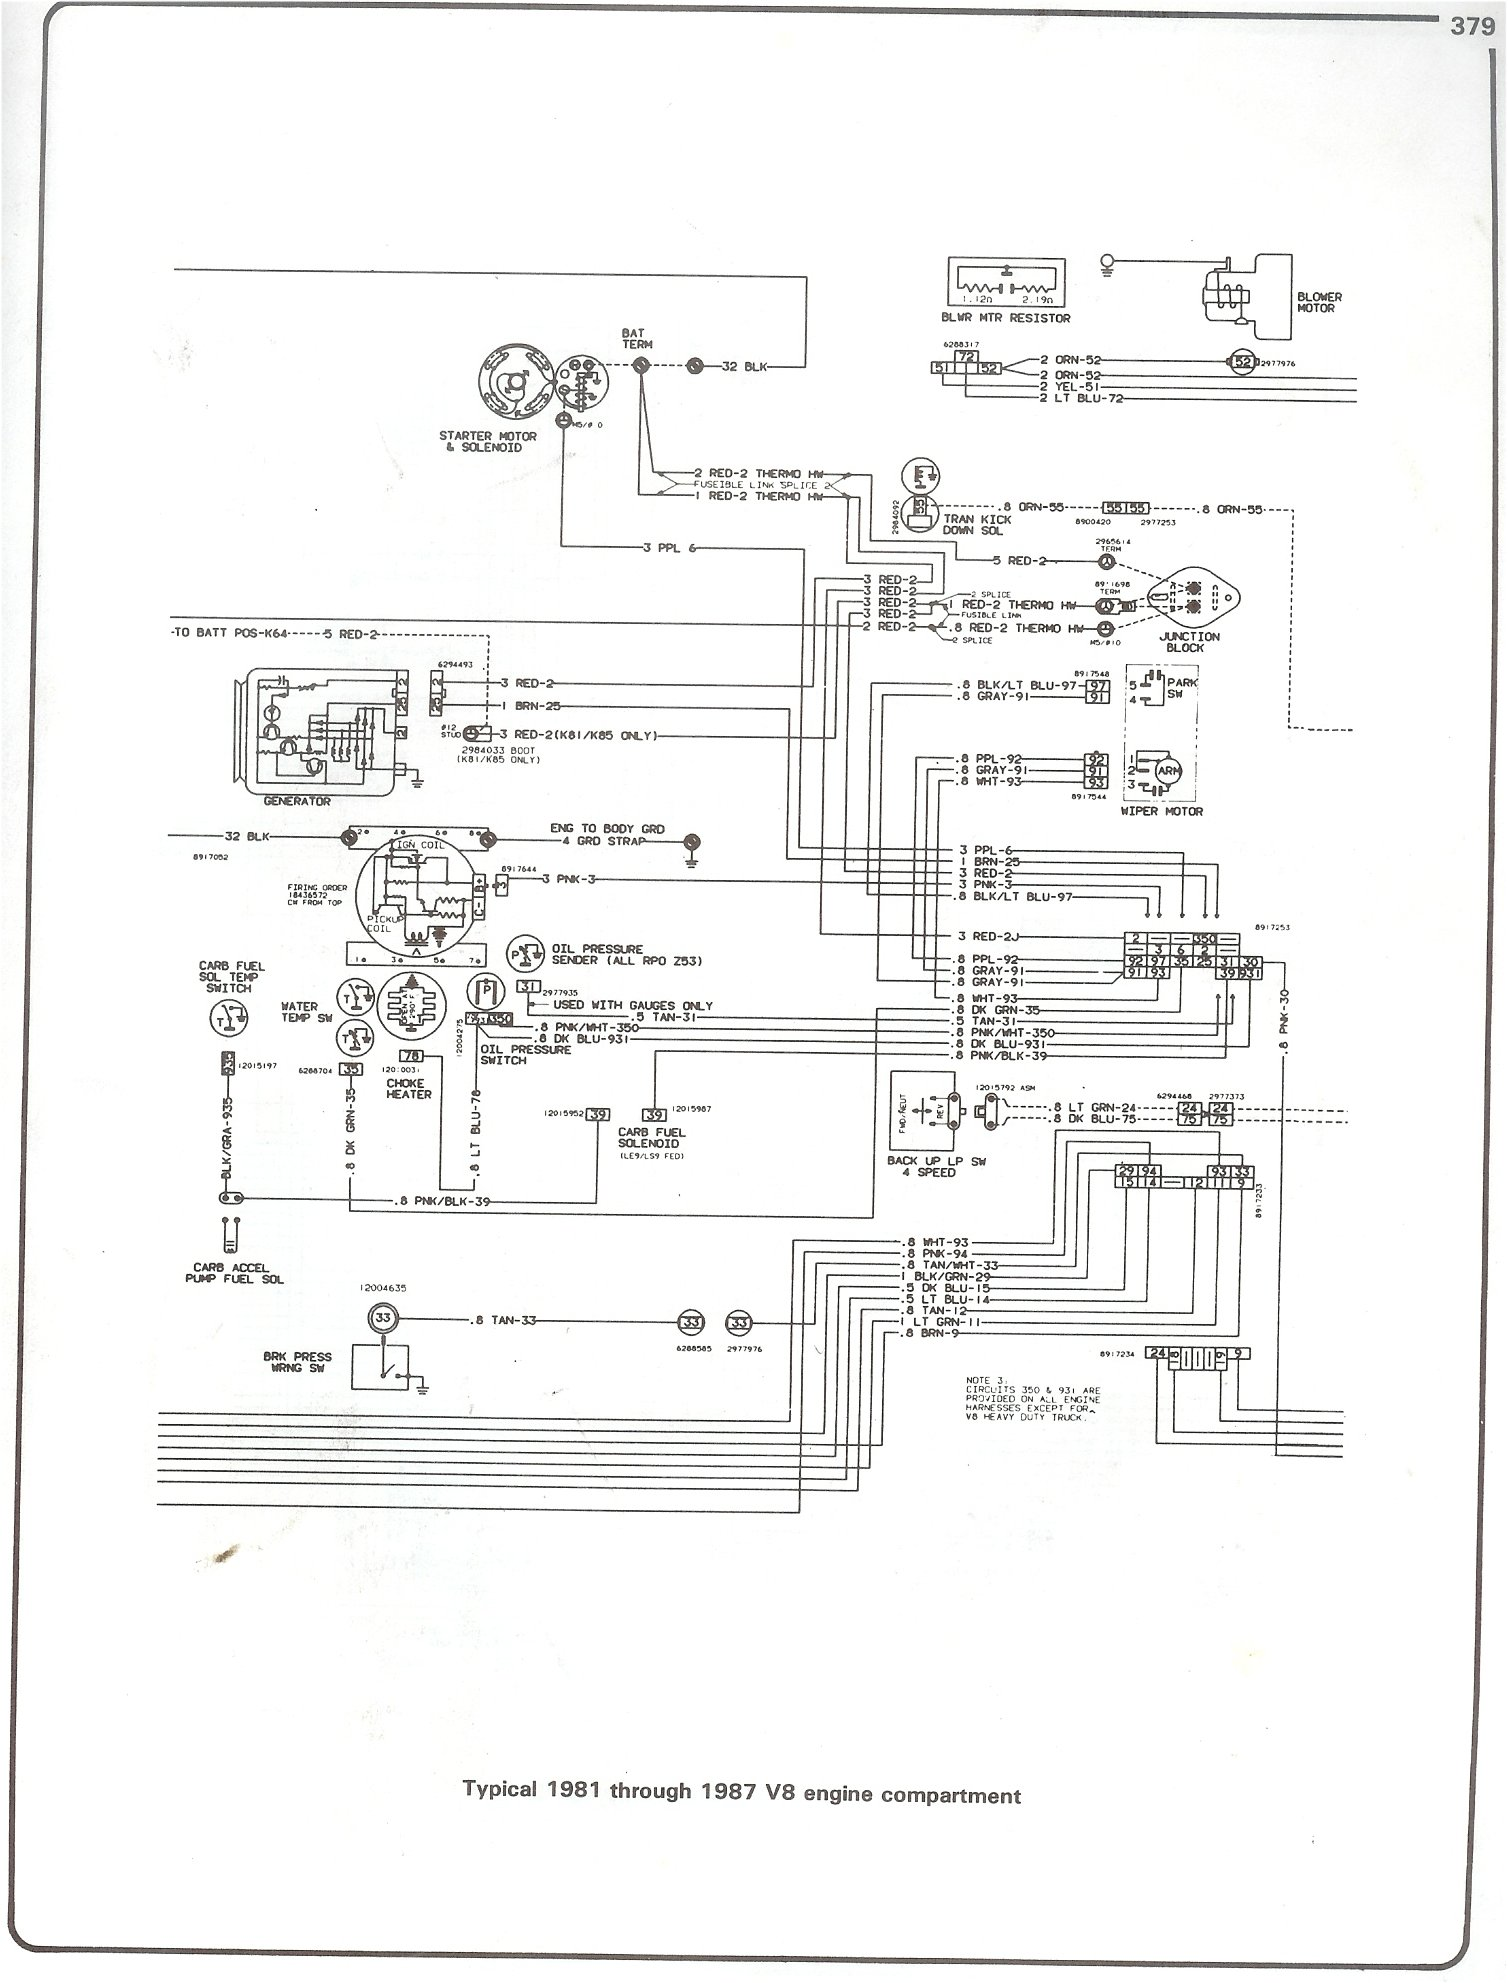 81 87_V8_engine complete 73 87 wiring diagrams 1988 GMC Sierra 1500 at panicattacktreatment.co